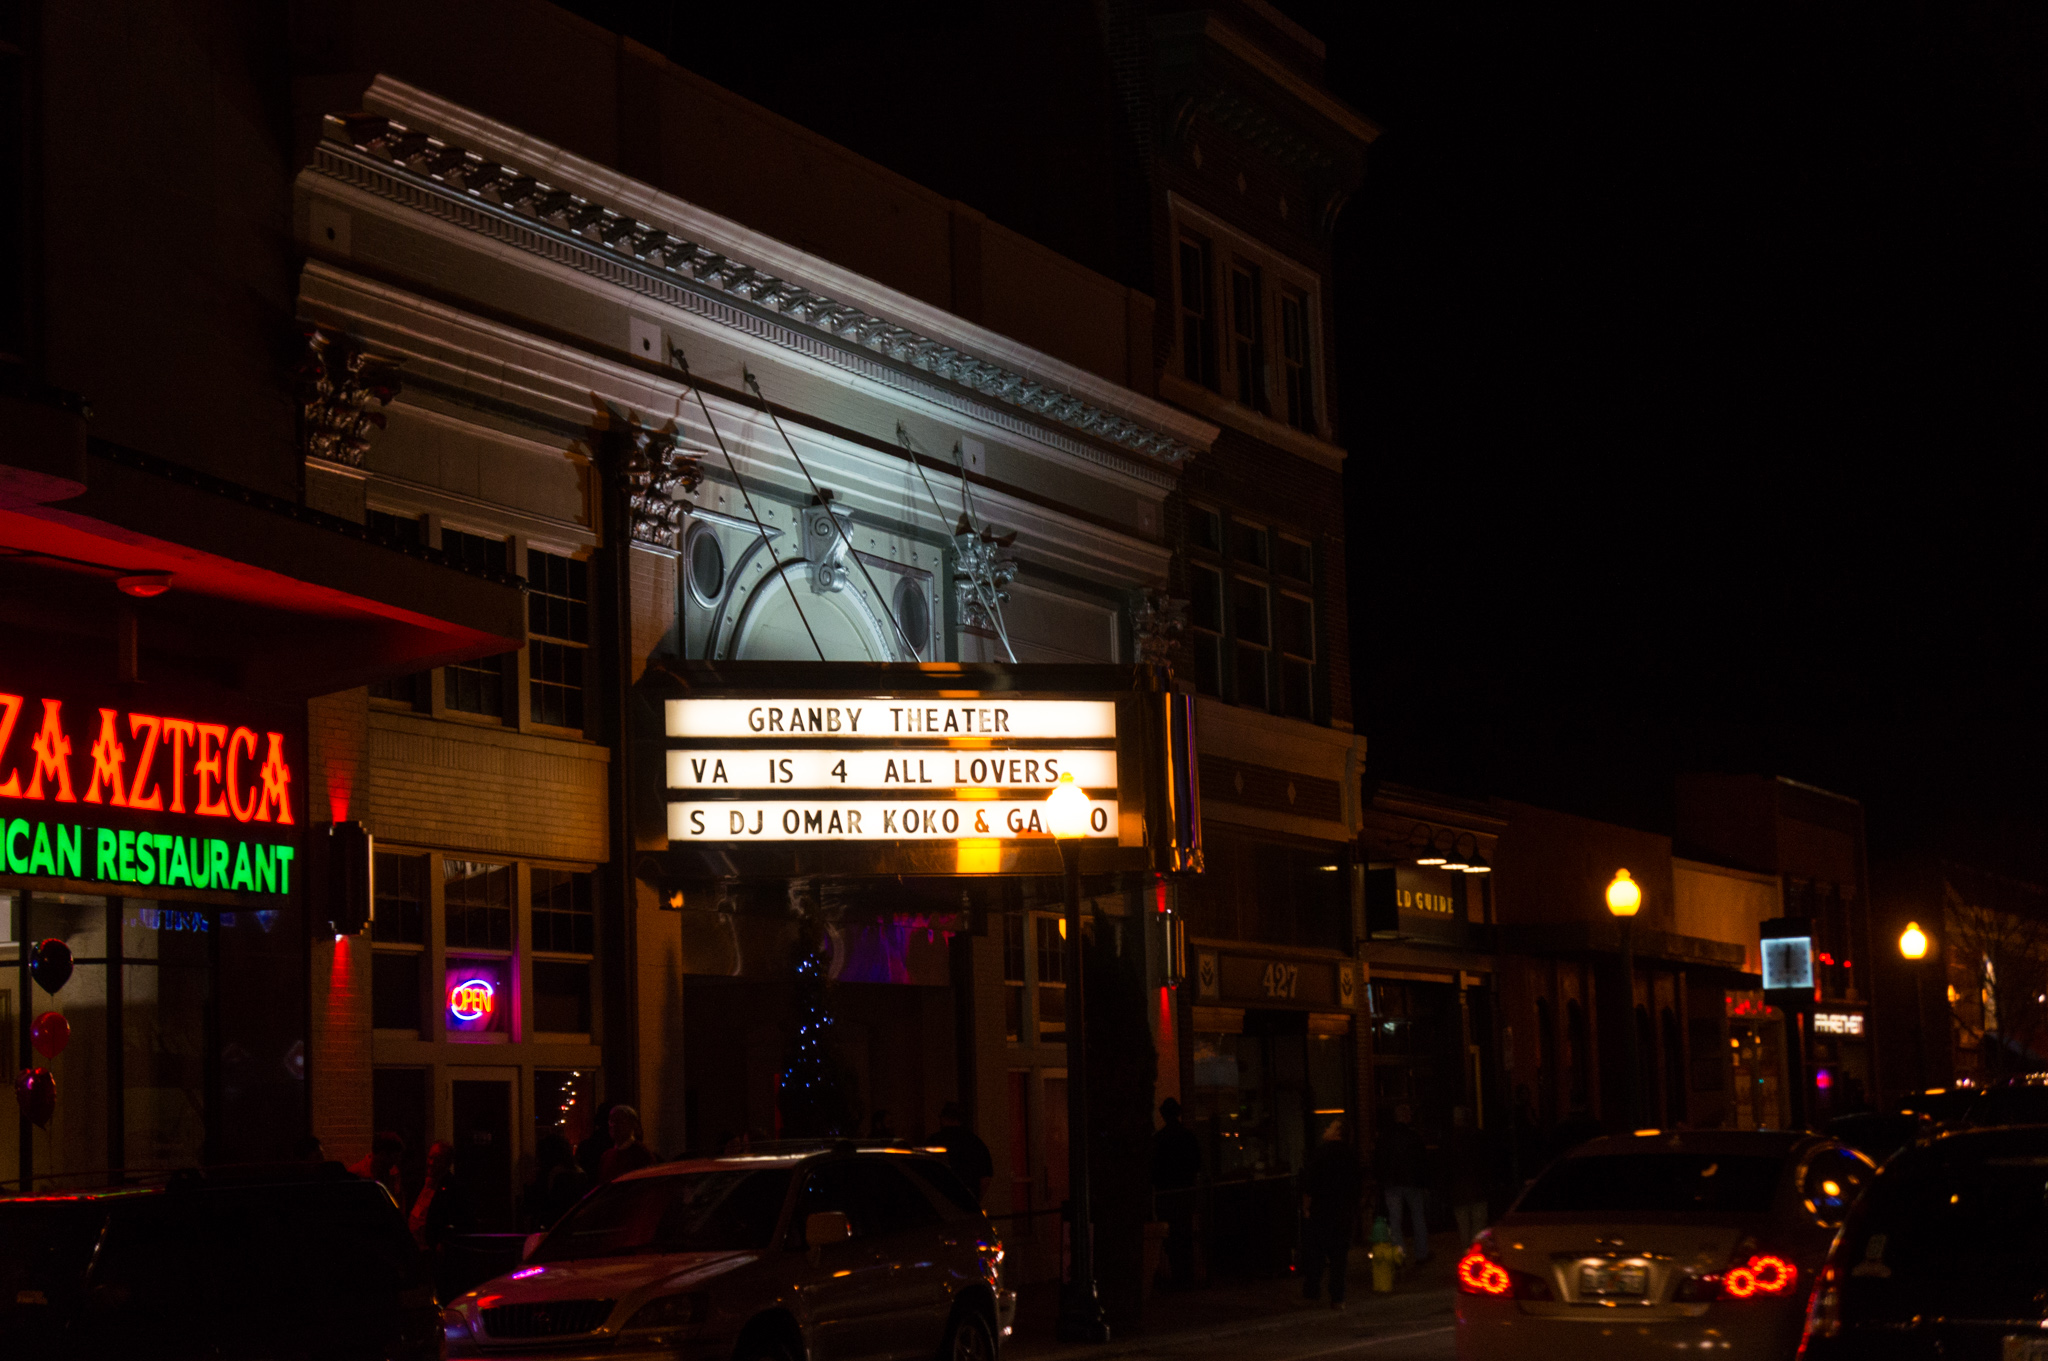 Granby Theater, Downtown Norfolk, VA, February 14, 2014